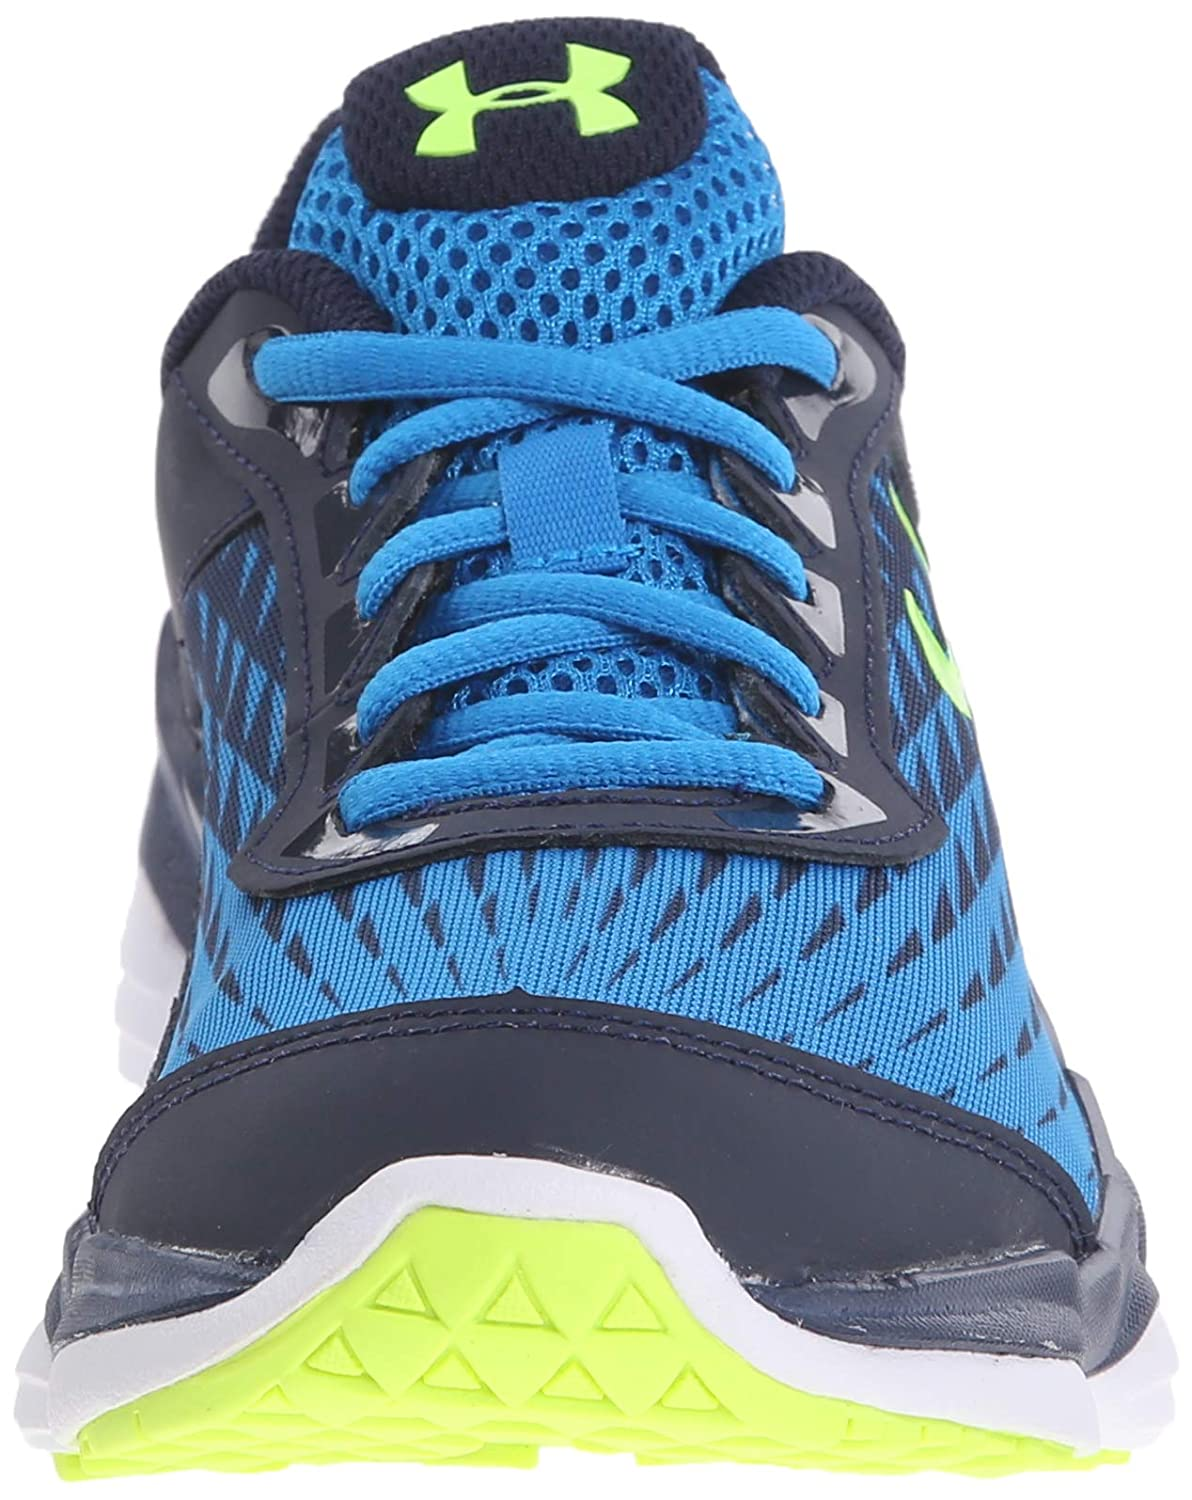 f6fe3ba29a242 Amazon.com | Under Armour Boy's Micro G Spine Disrupt Running Shoe | Running